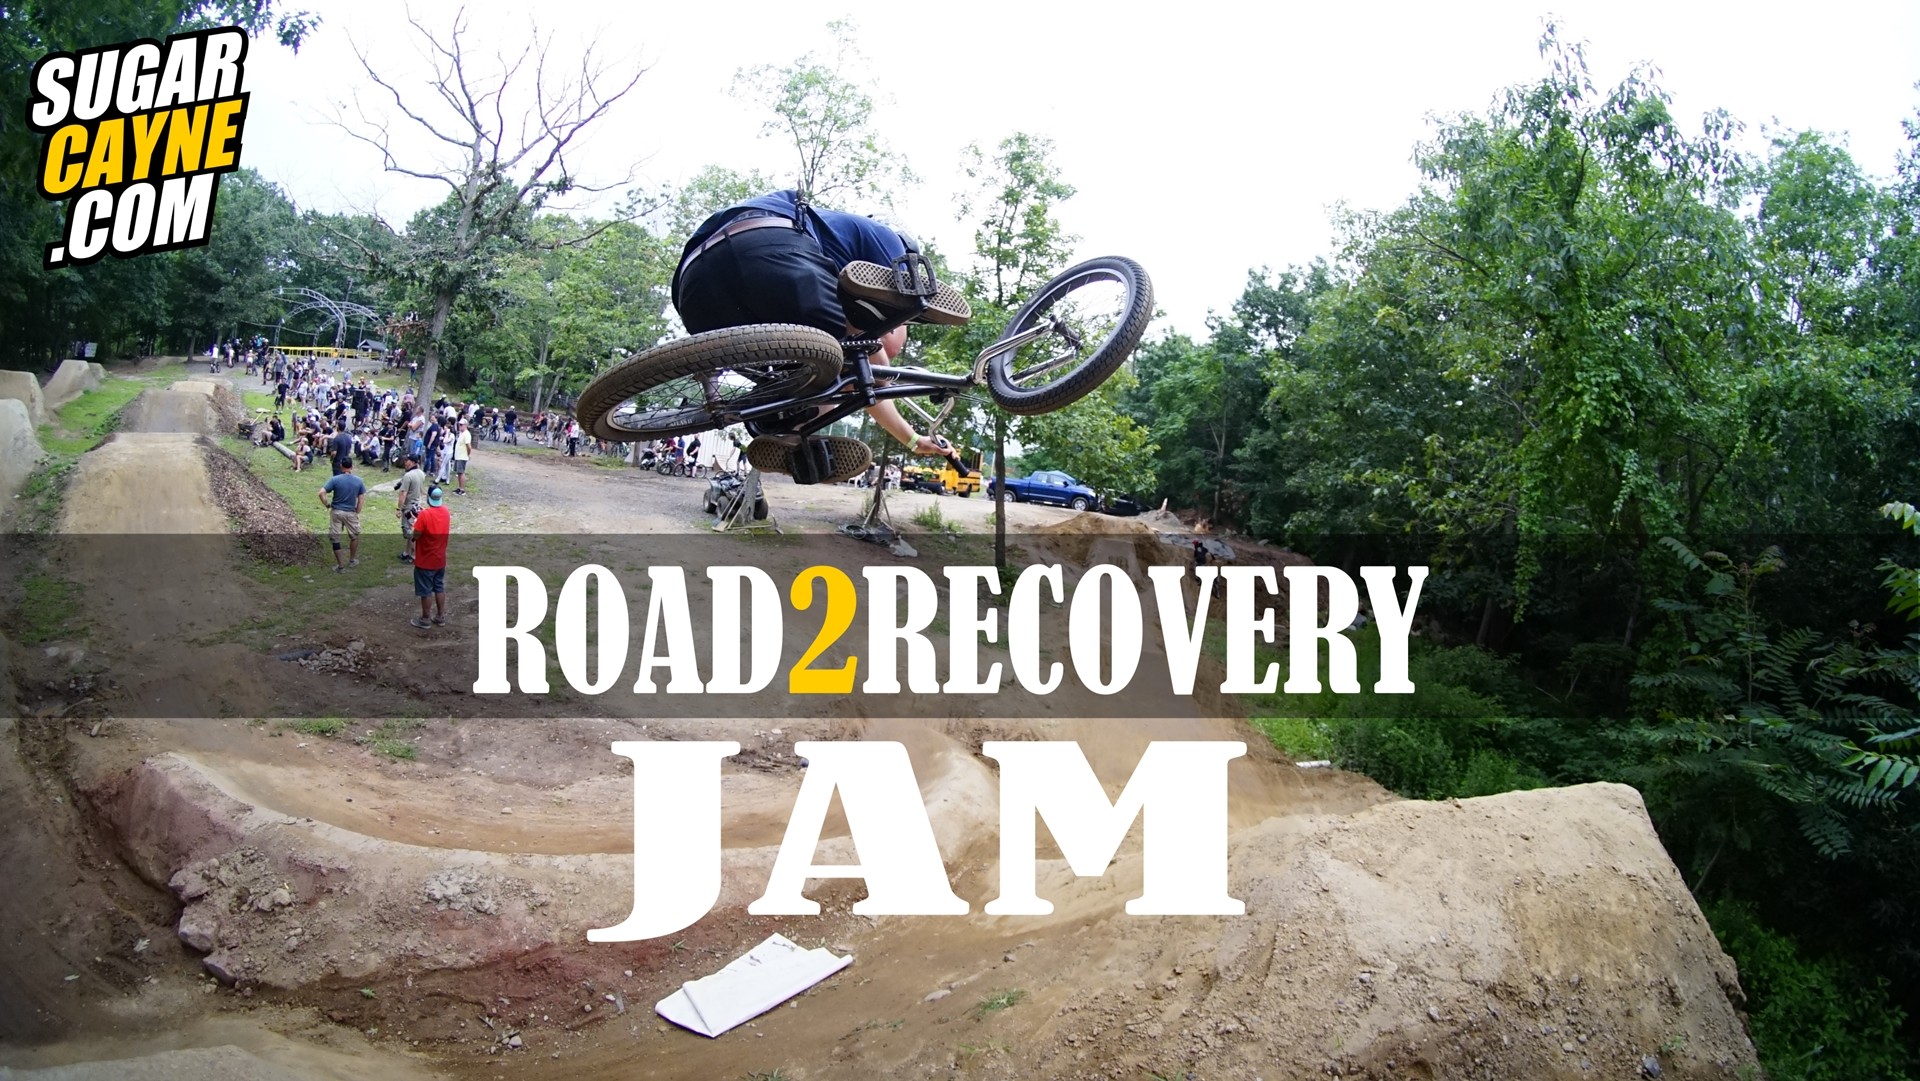 road2recovery jam